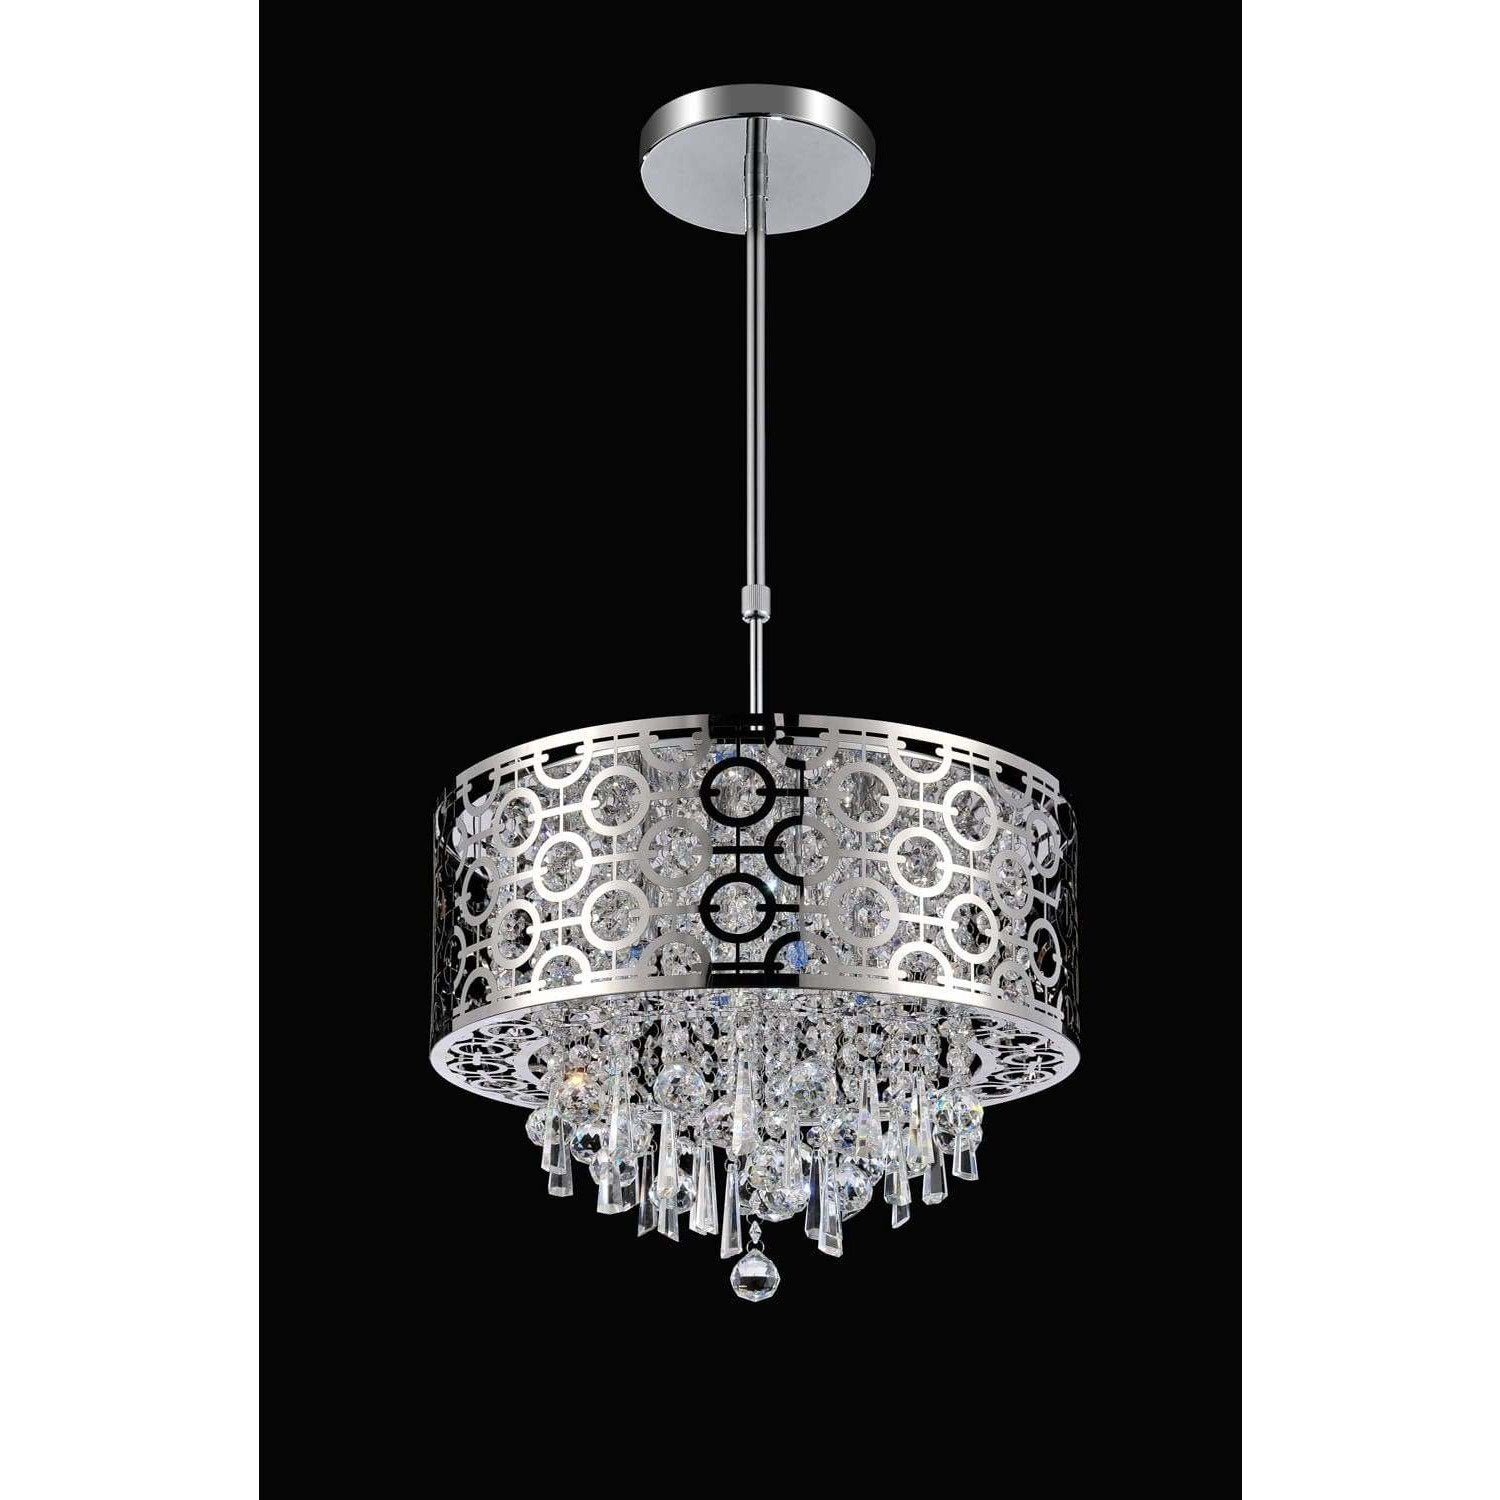 CWI Lighting Pendants Chrome / K9 Clear Galant 3 Light Drum Shade Mini Pendant with Chrome finish by CWI Lighting 5430P12ST-R